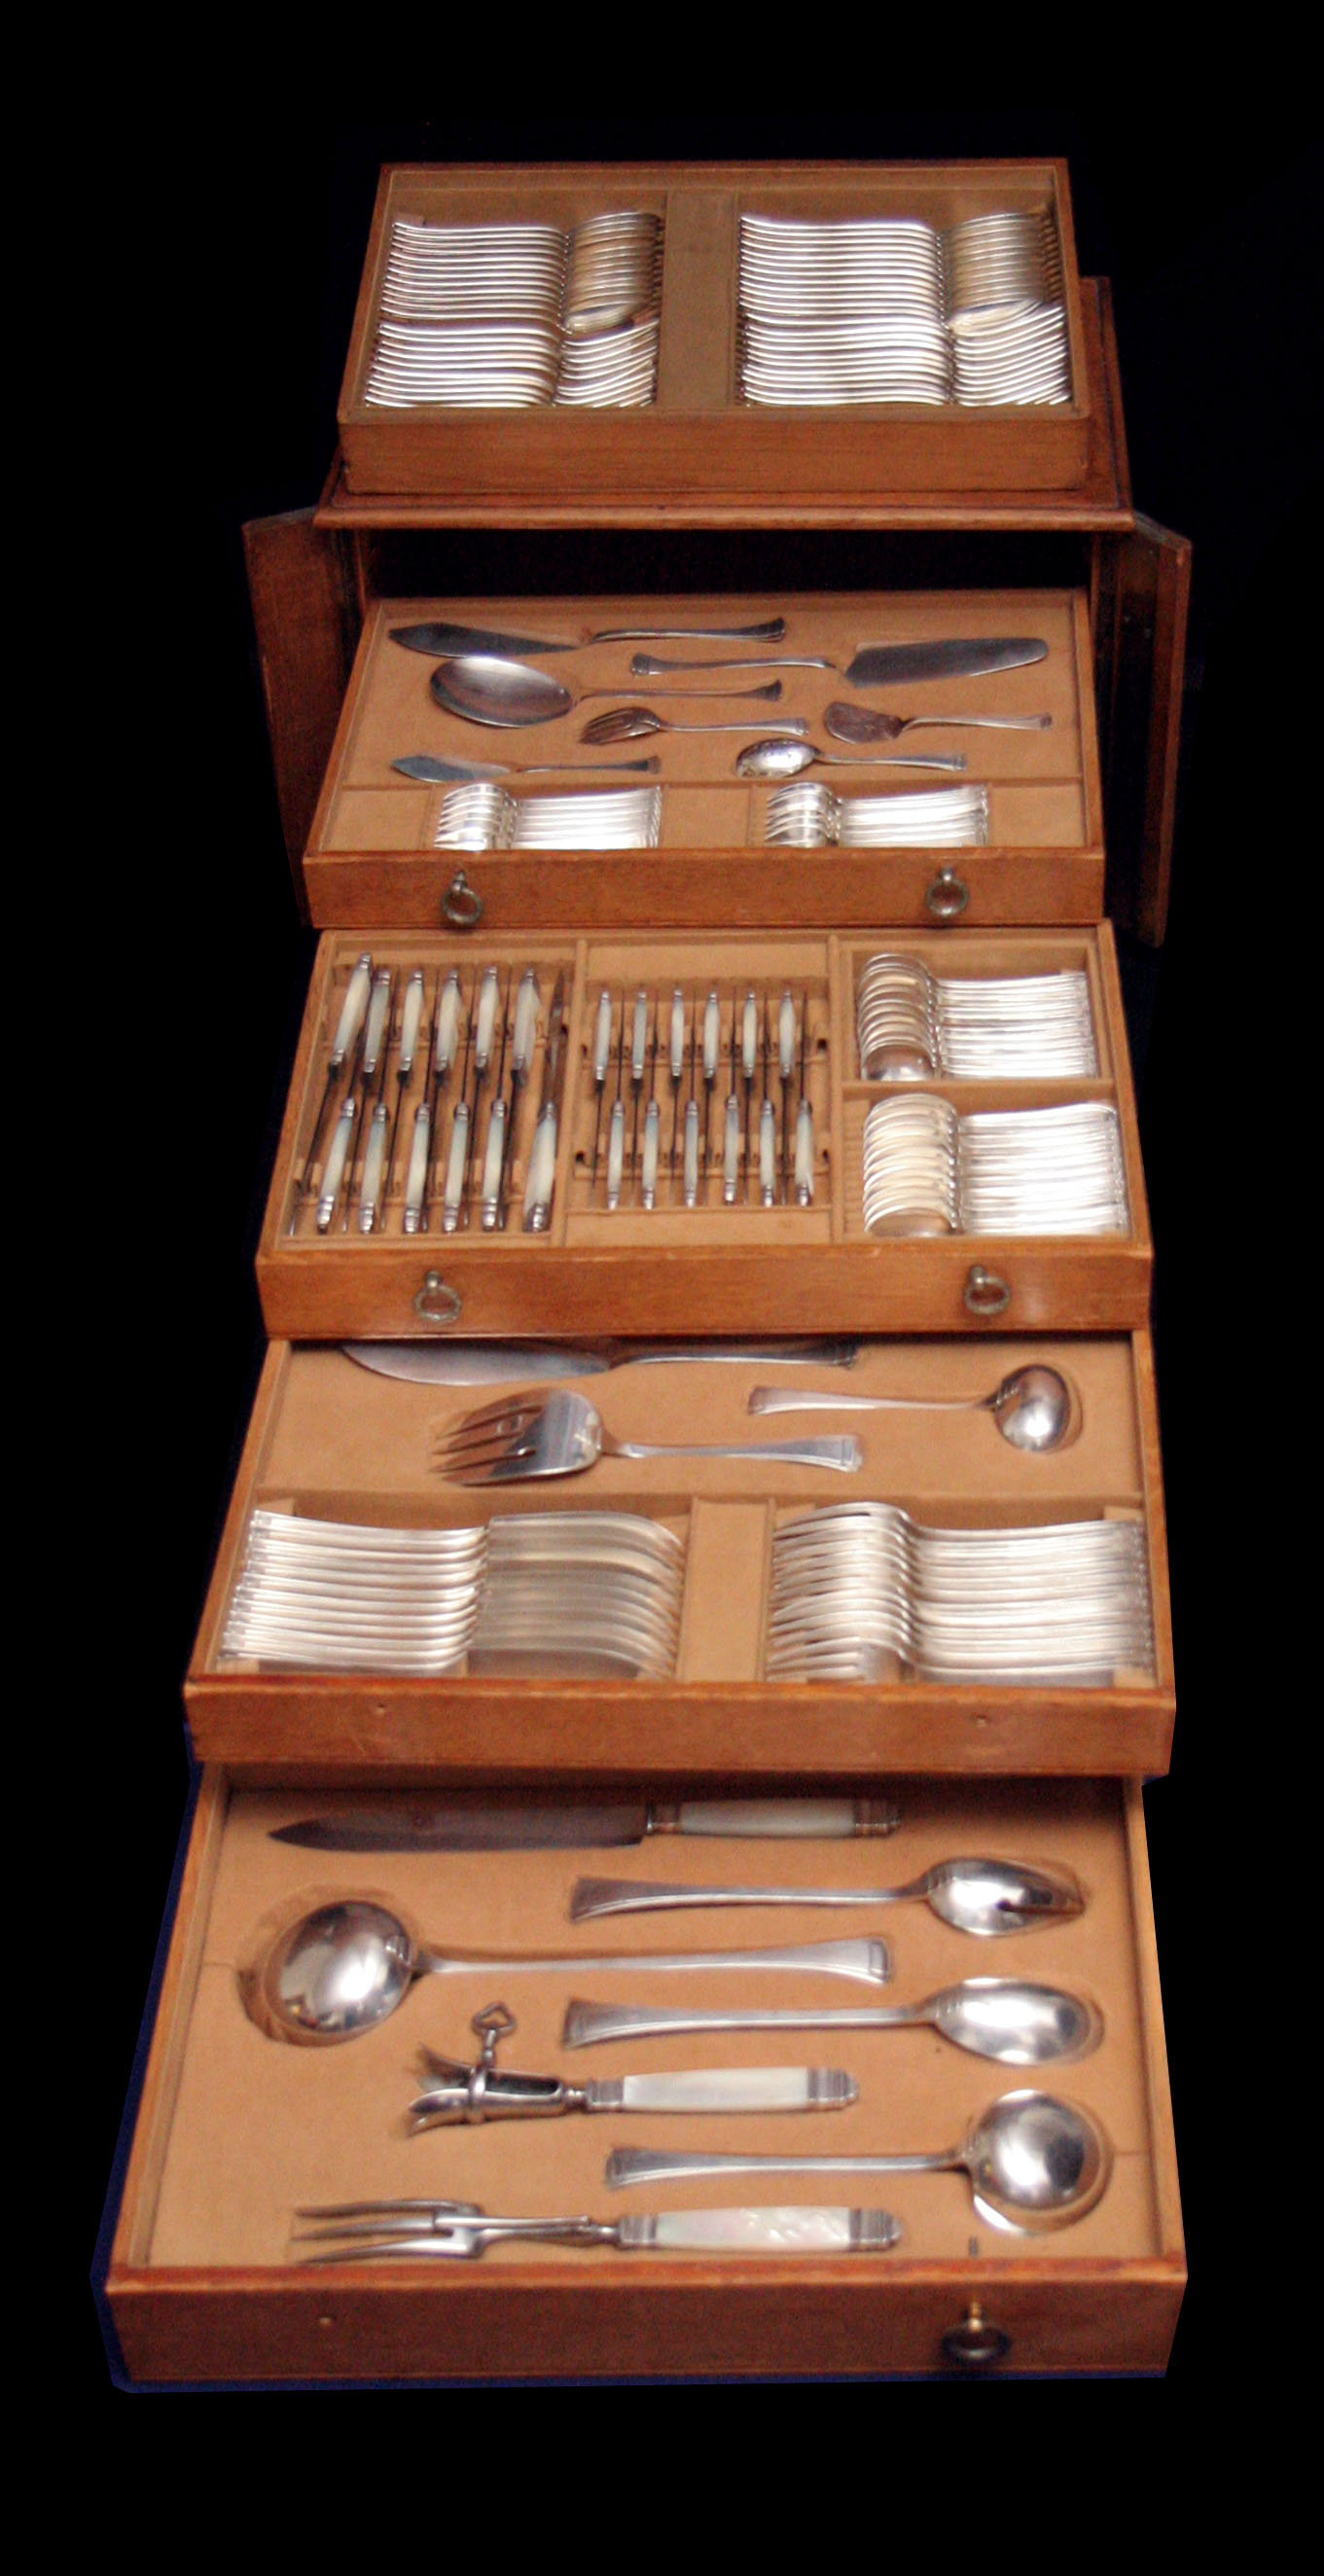 frenchartdecosterlingsilverflatwareset-chestopen-1000